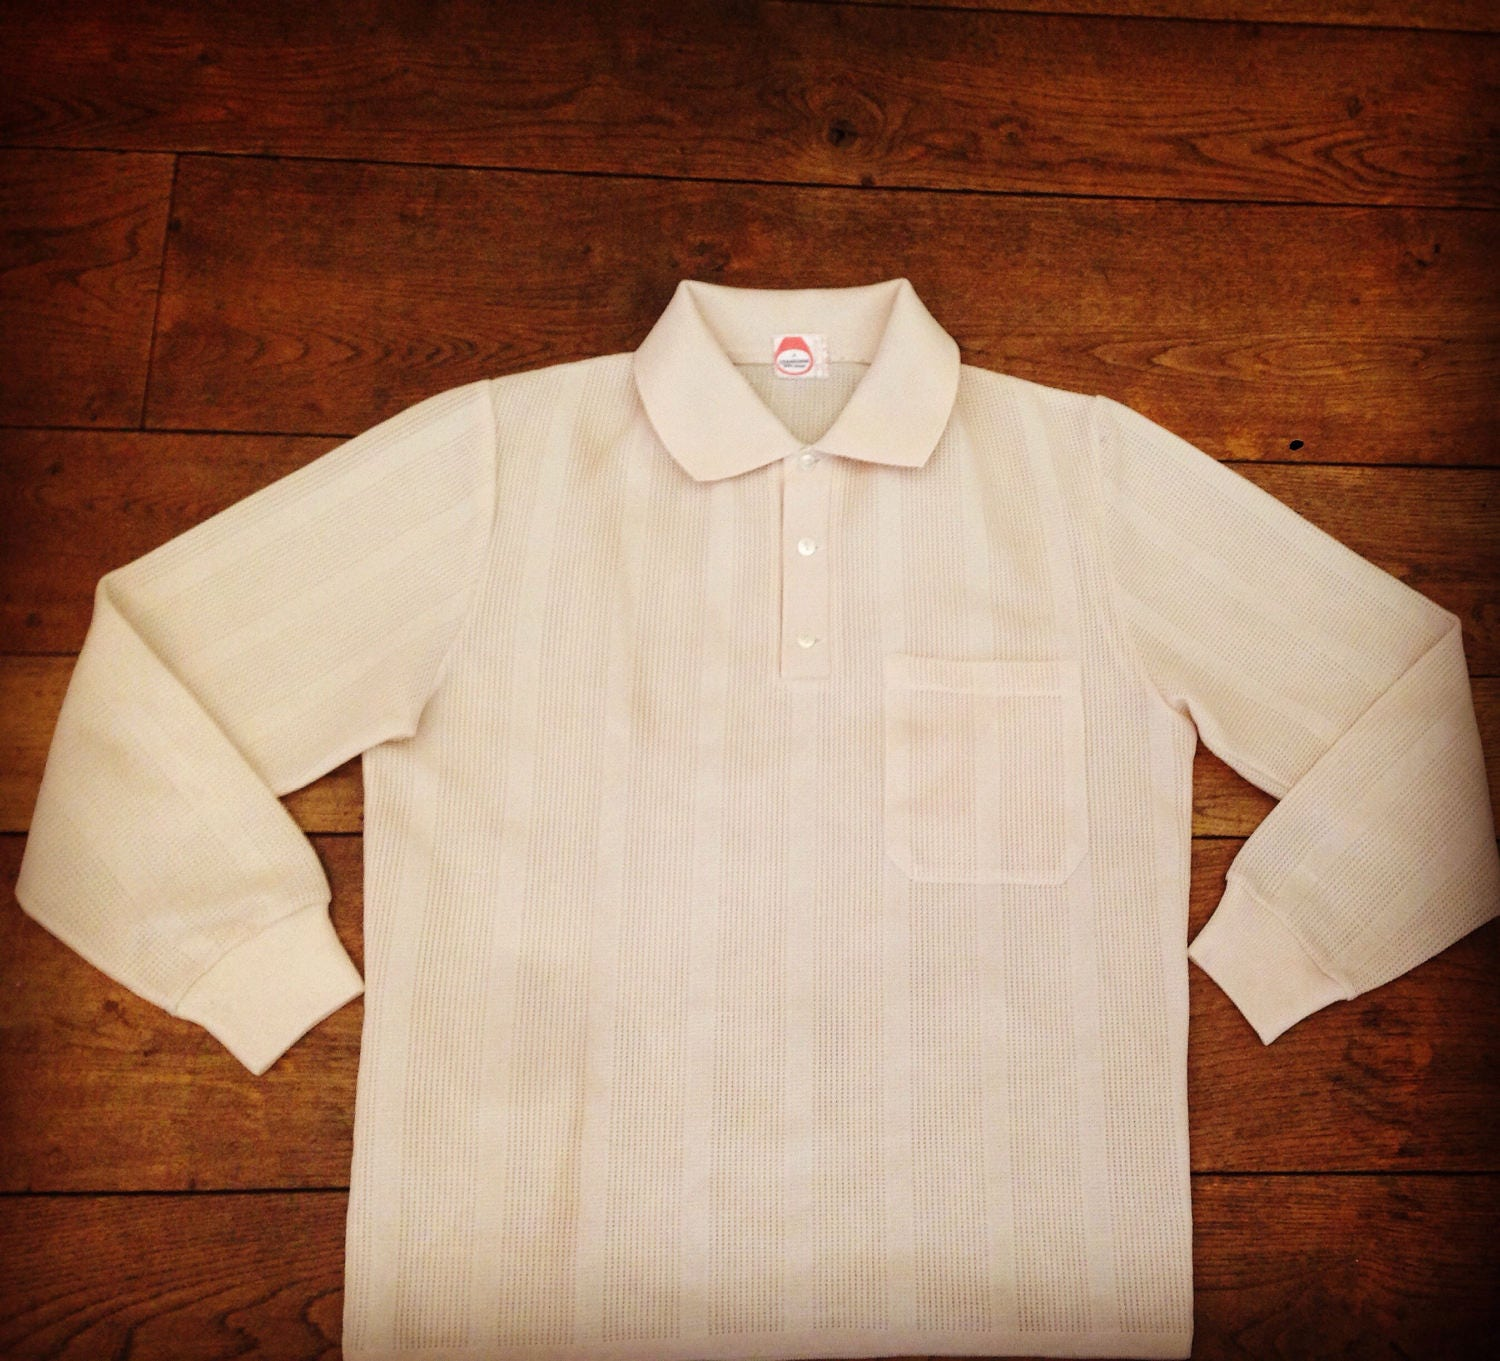 1960s Knitted Polo Shirt Small Mesh Net Vintage Rare Crocheted Mod Cream Like Fred Perry